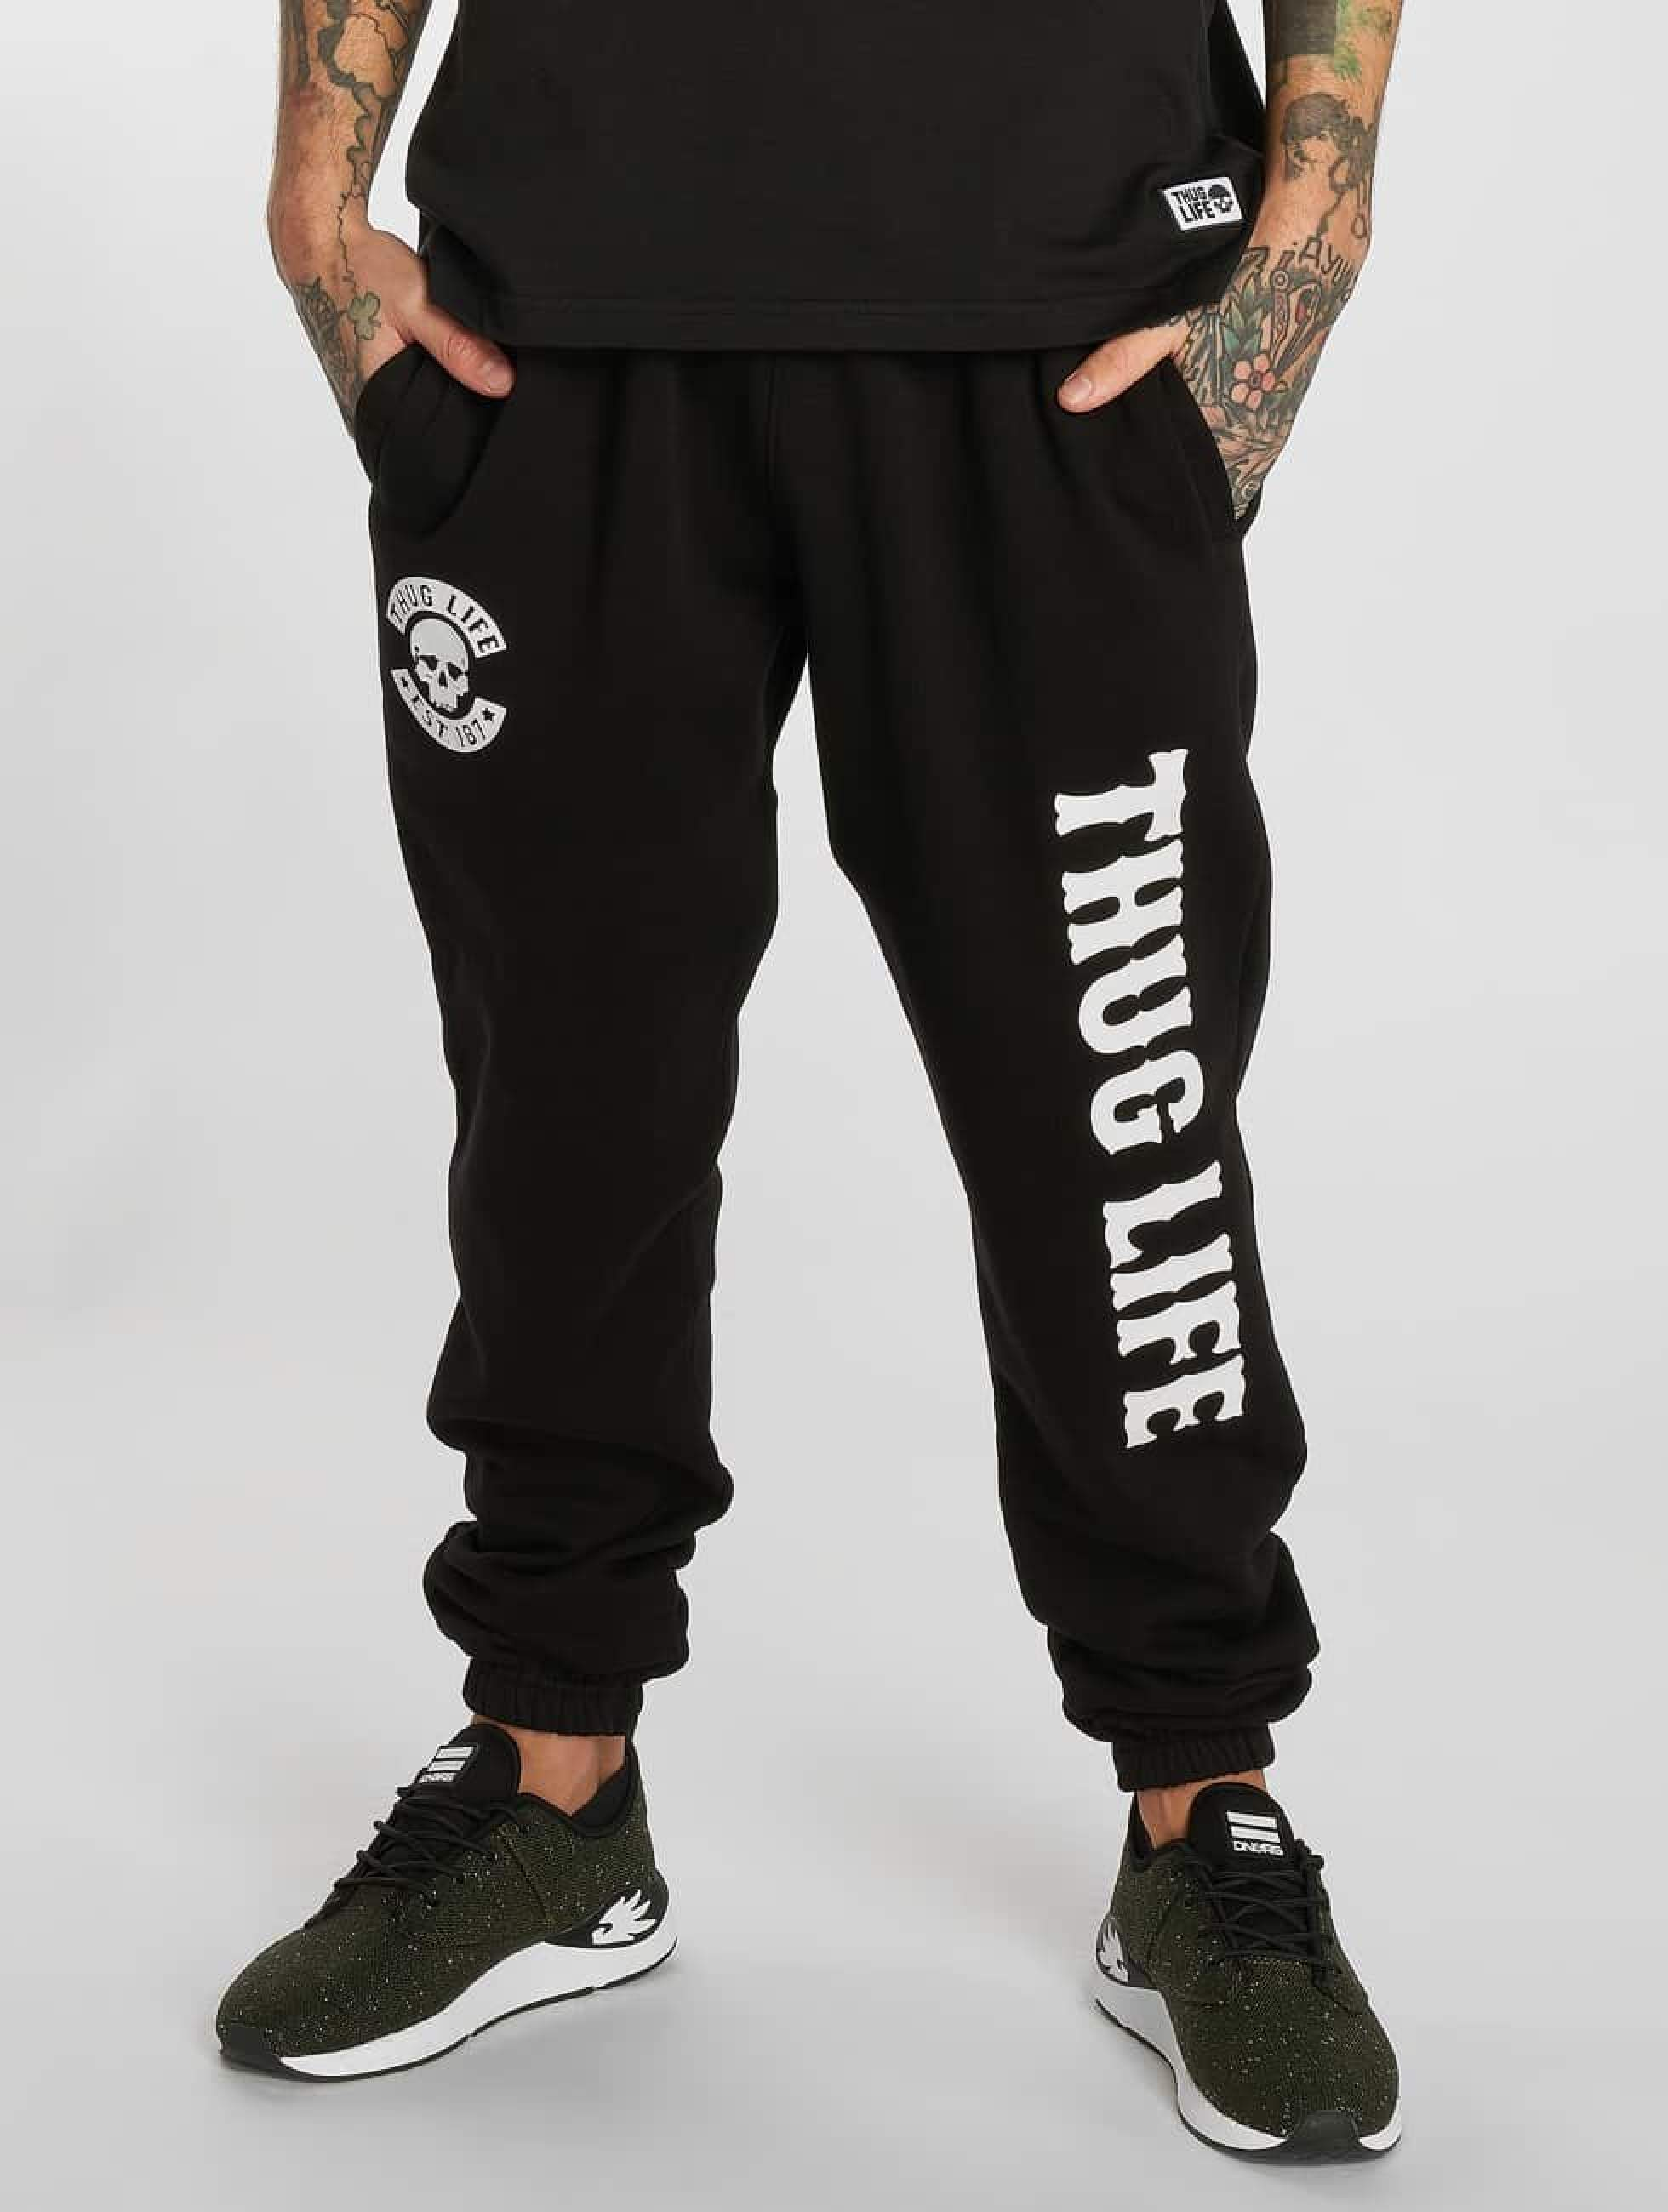 Thug Life / Sweat Pant TLSP124 in black XL